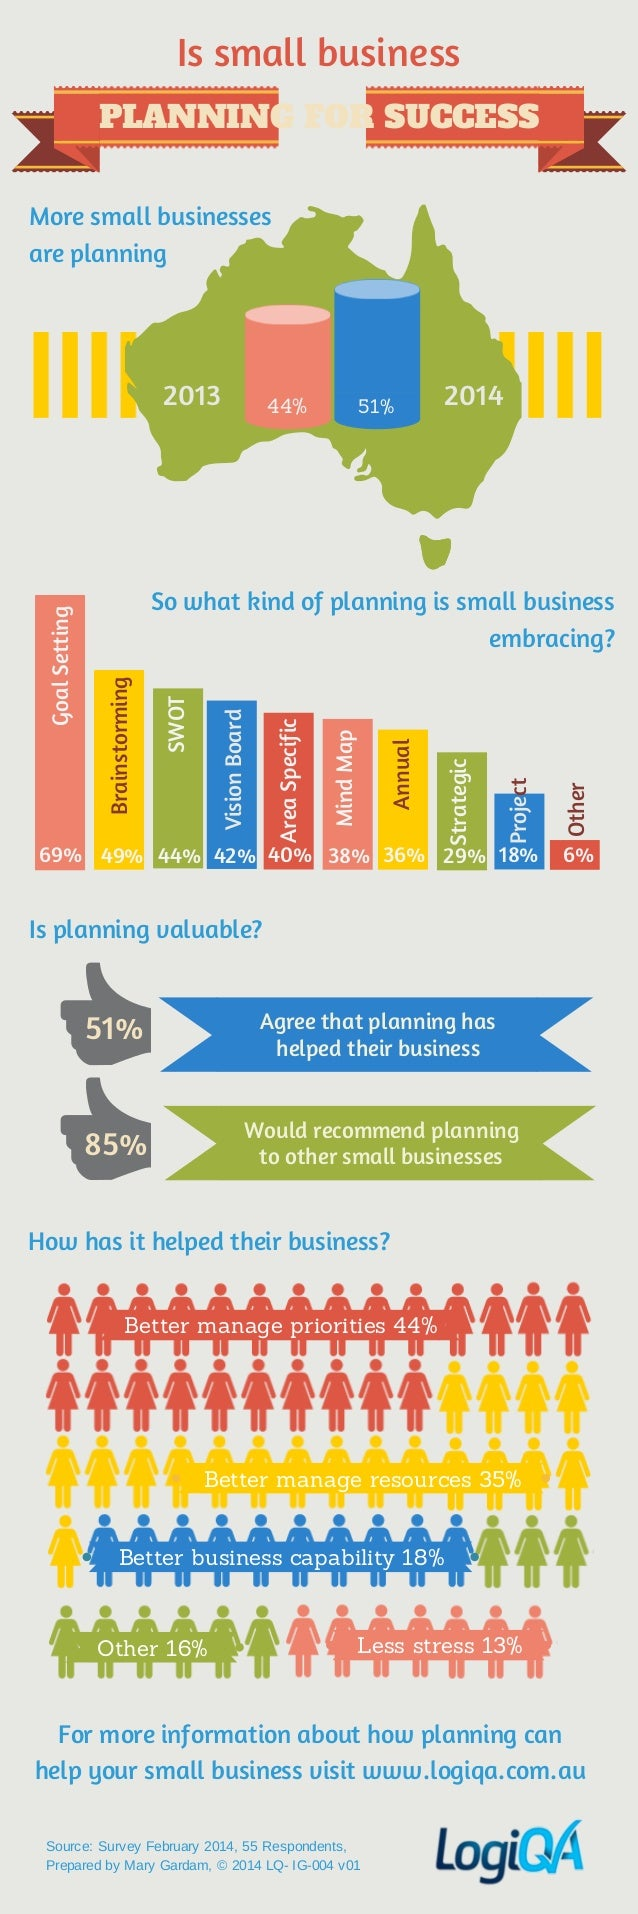 Is small business PLANNING FOR SUCCESS More small businesses are planning  44%  51%  2014  69% 49% 44% 42% 40% 38% 36% 29%...